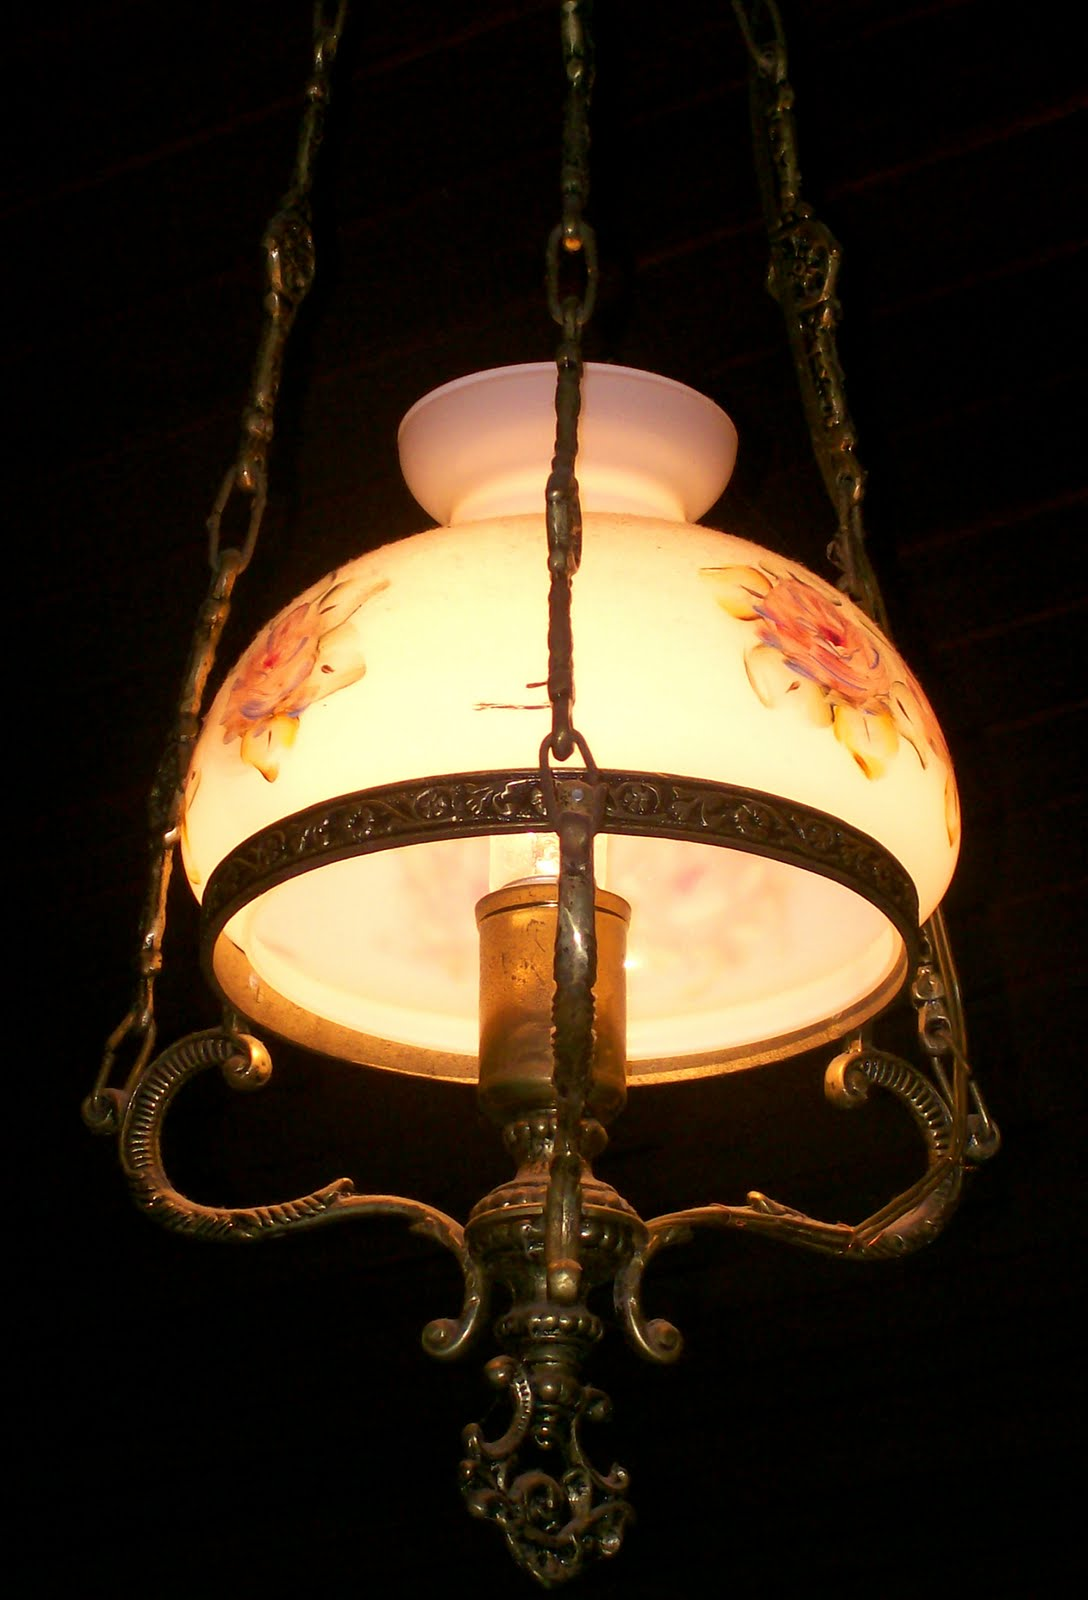 Old-Fashioned+Lighting+Fixtures Old-fashioned Lighting at Home: May ...